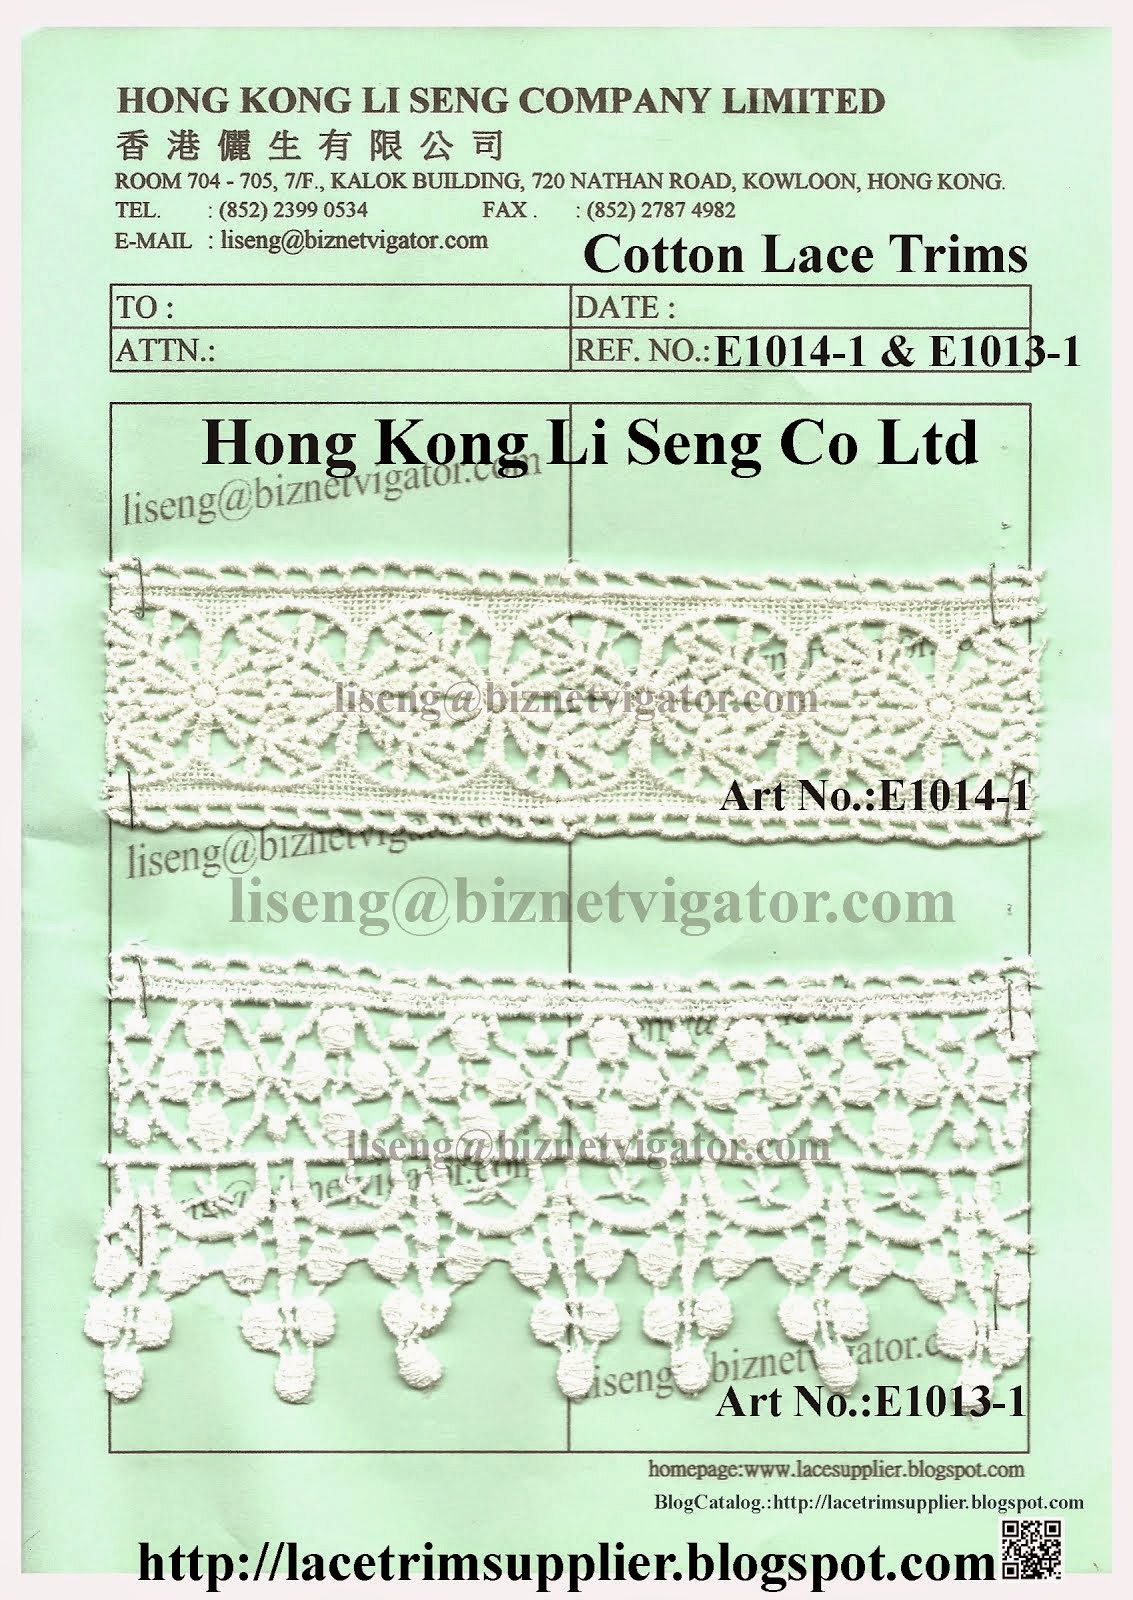 Embroidered Cotton Lace Trims Manufacturer Wholesale and Supplier - Hong Kong Li Seng Co Ltd